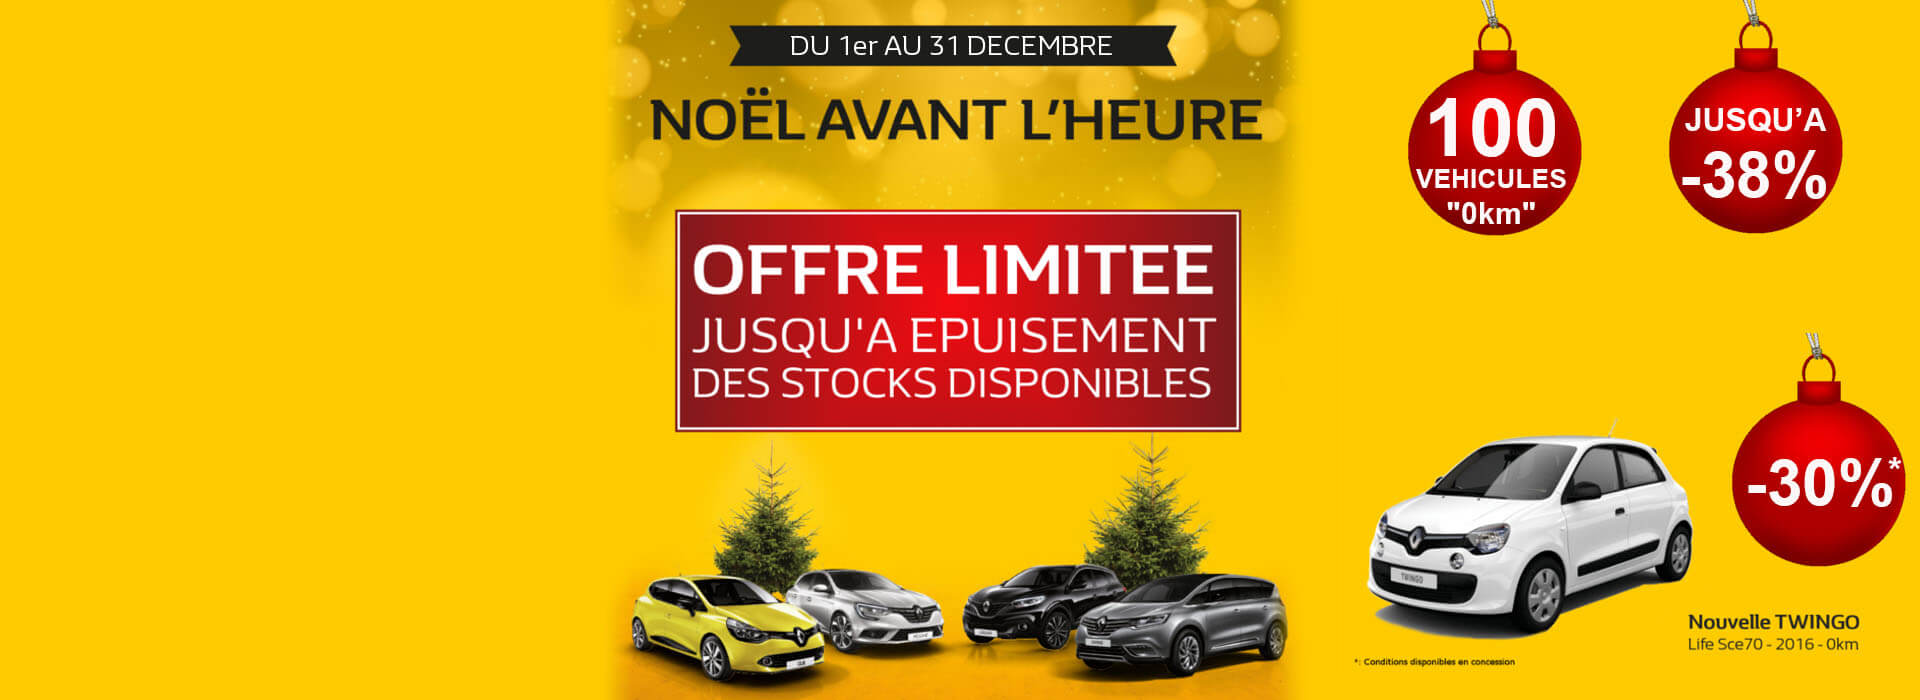 Renault villemomble concessionnaire garage seine for Garage volkswagen saint denis